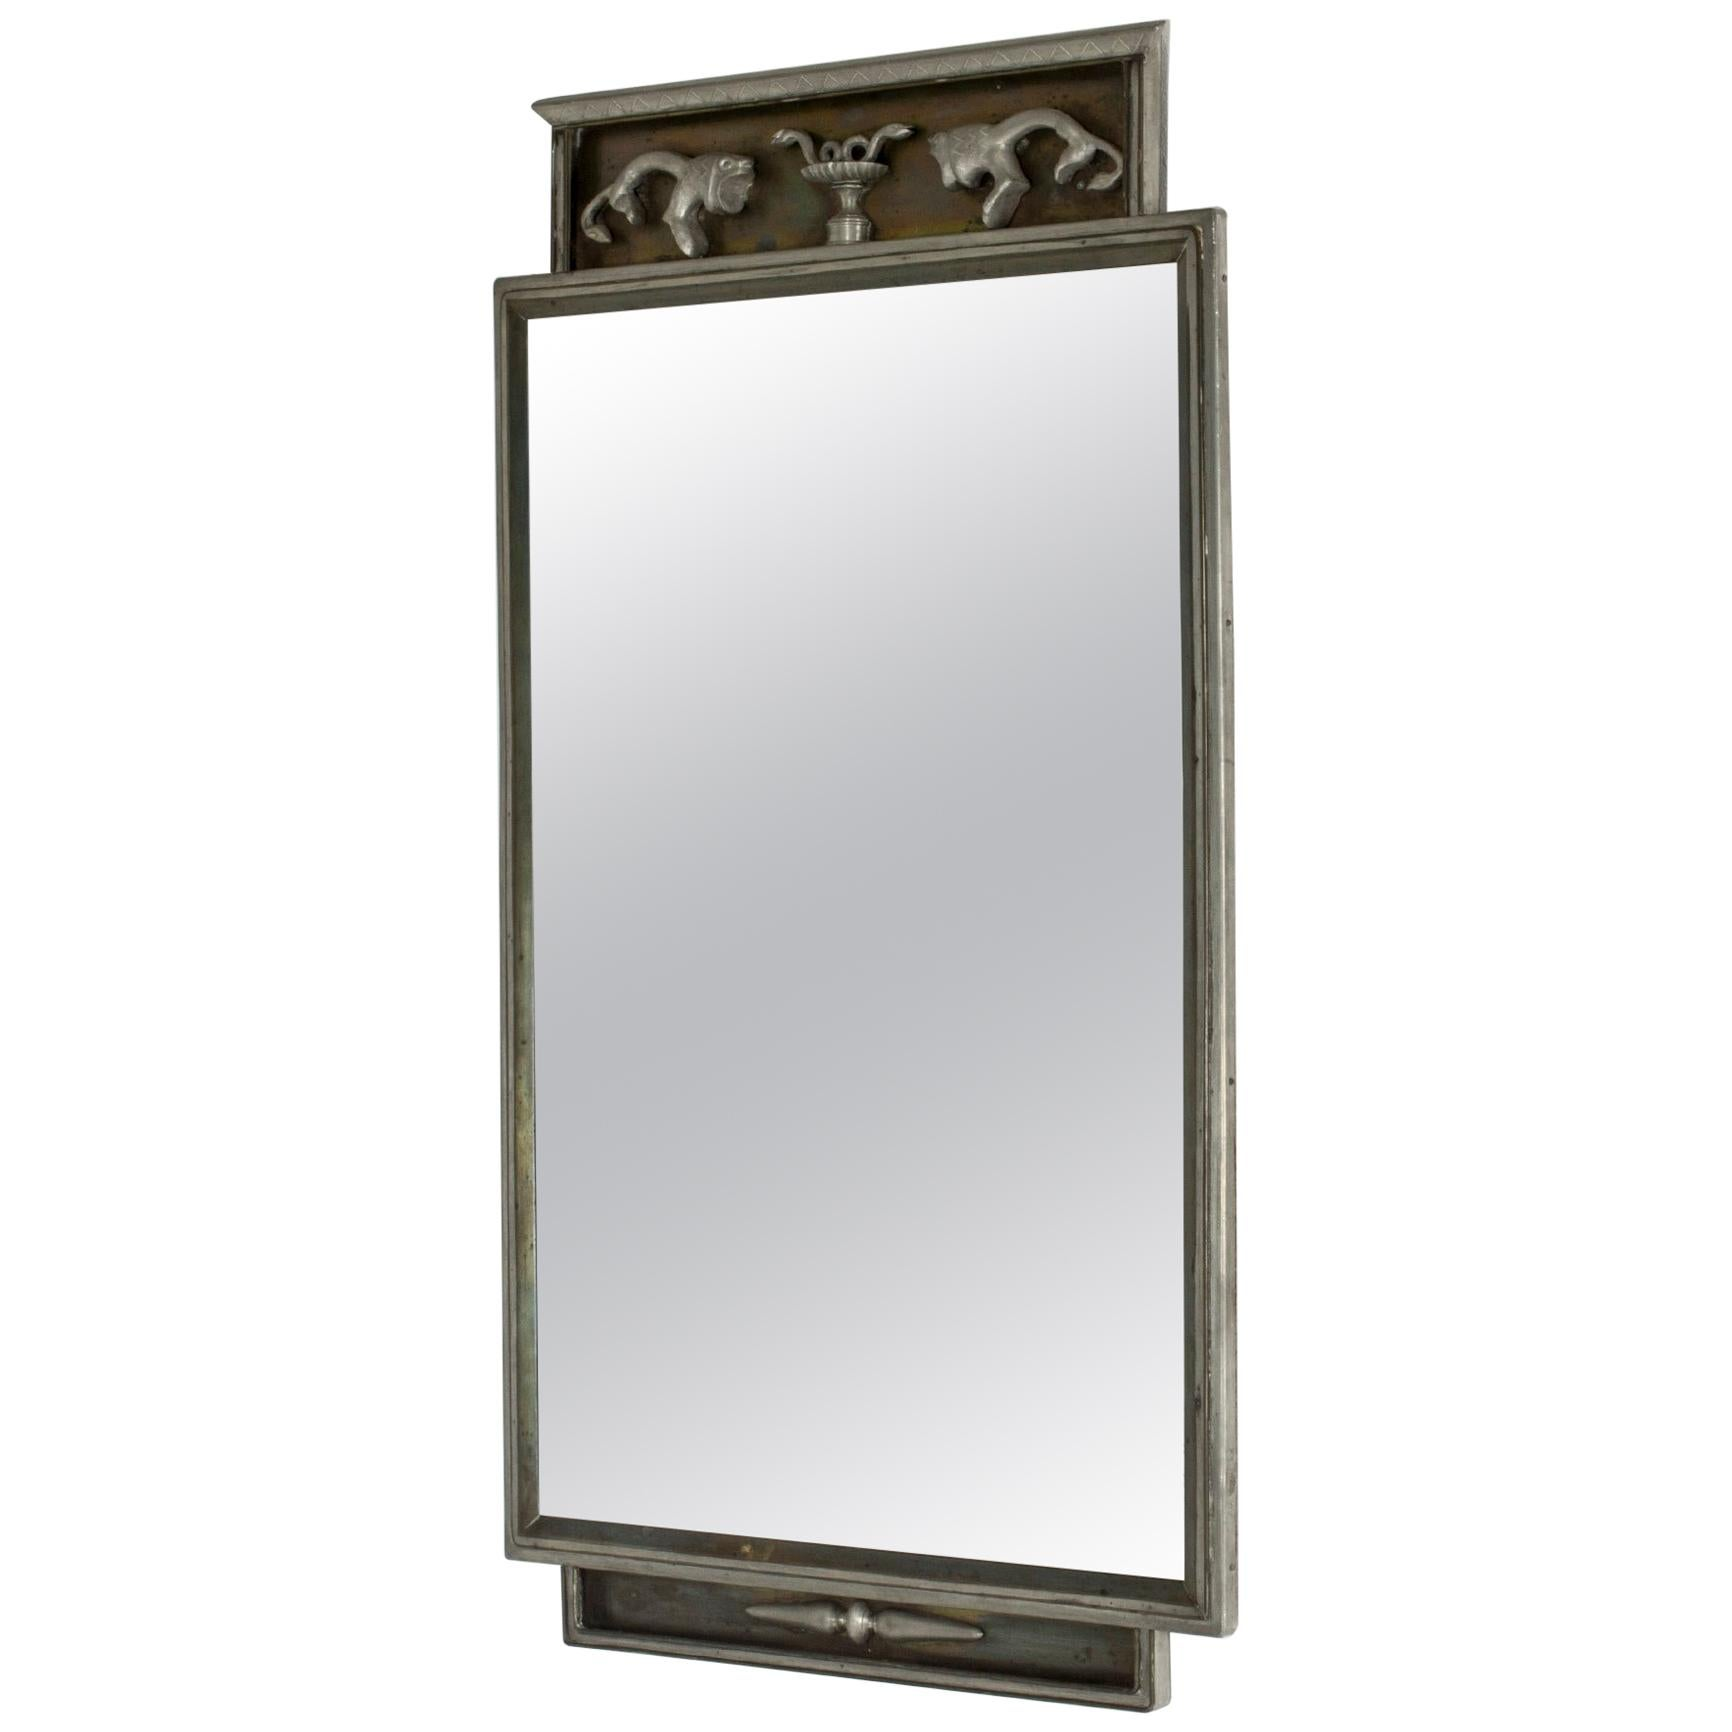 1930s Pewter Wall Mirror by Nils Fougstedt